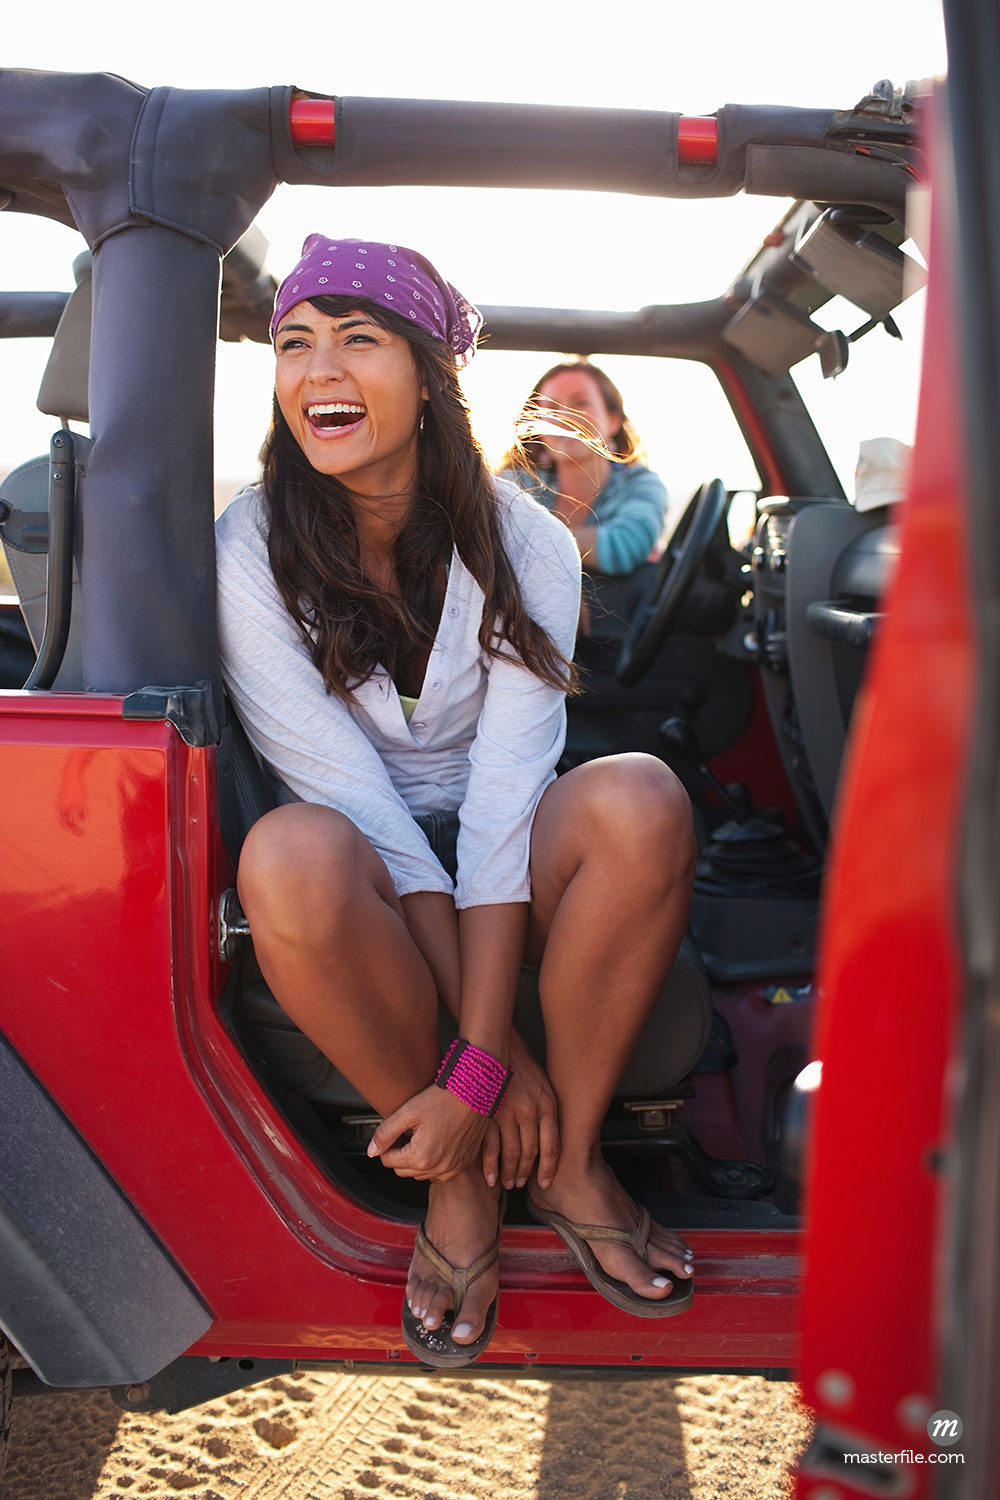 Women hanging out in red jeep in Baja California Sur, Mexico  ©  Ty Milford / Masterfile